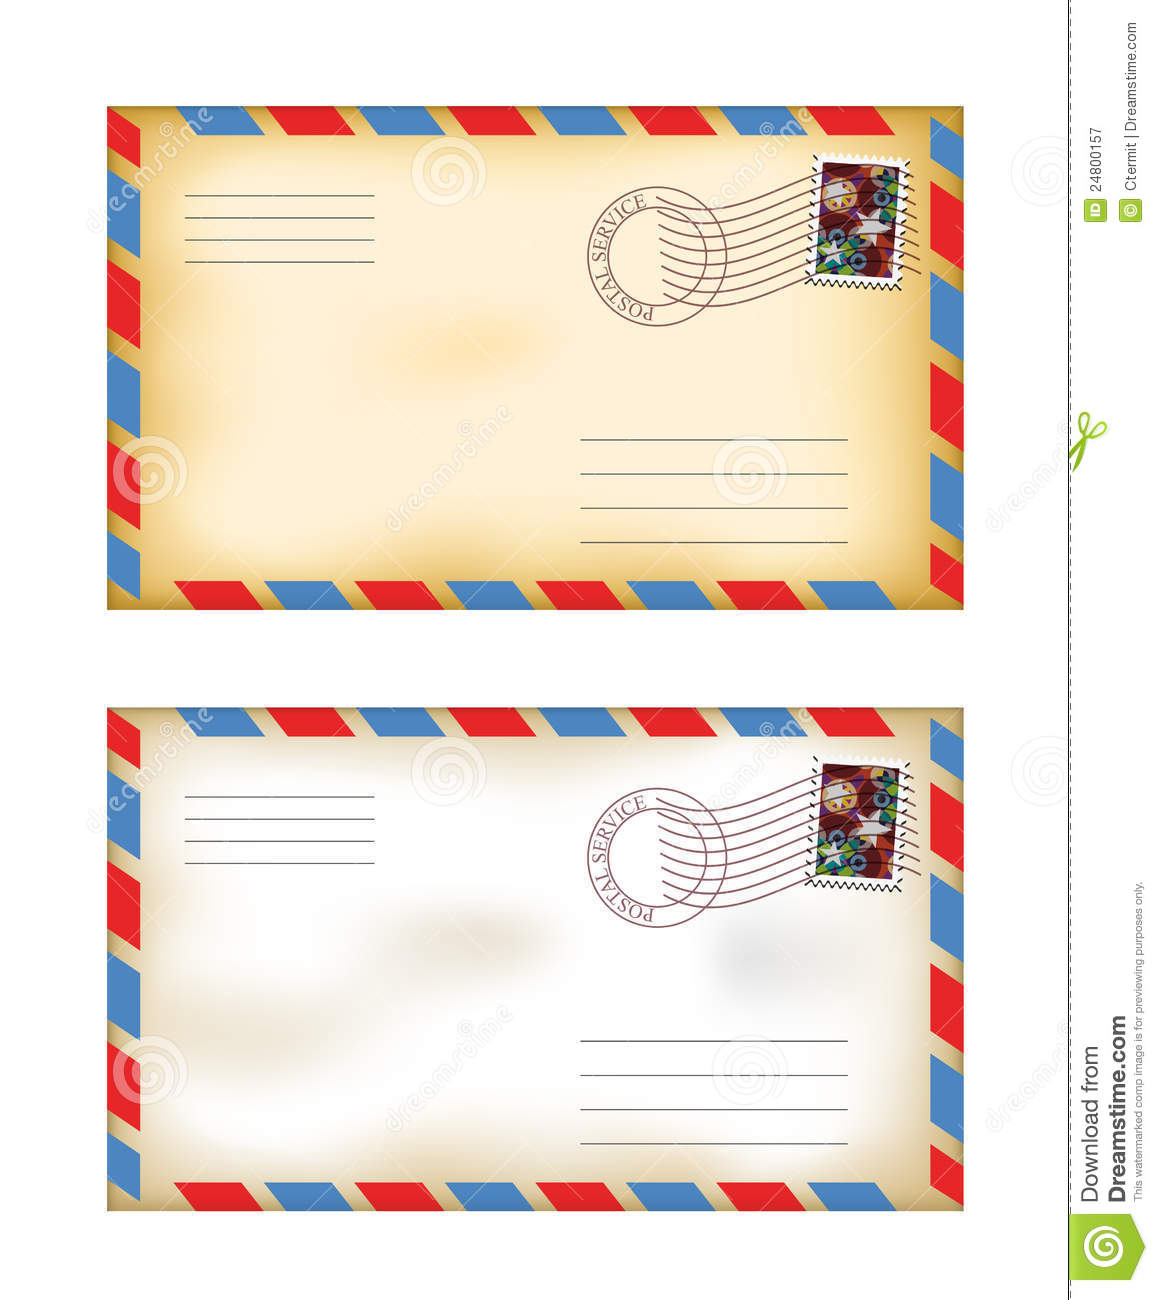 Old envelopes royalty free stock photography image 24800157